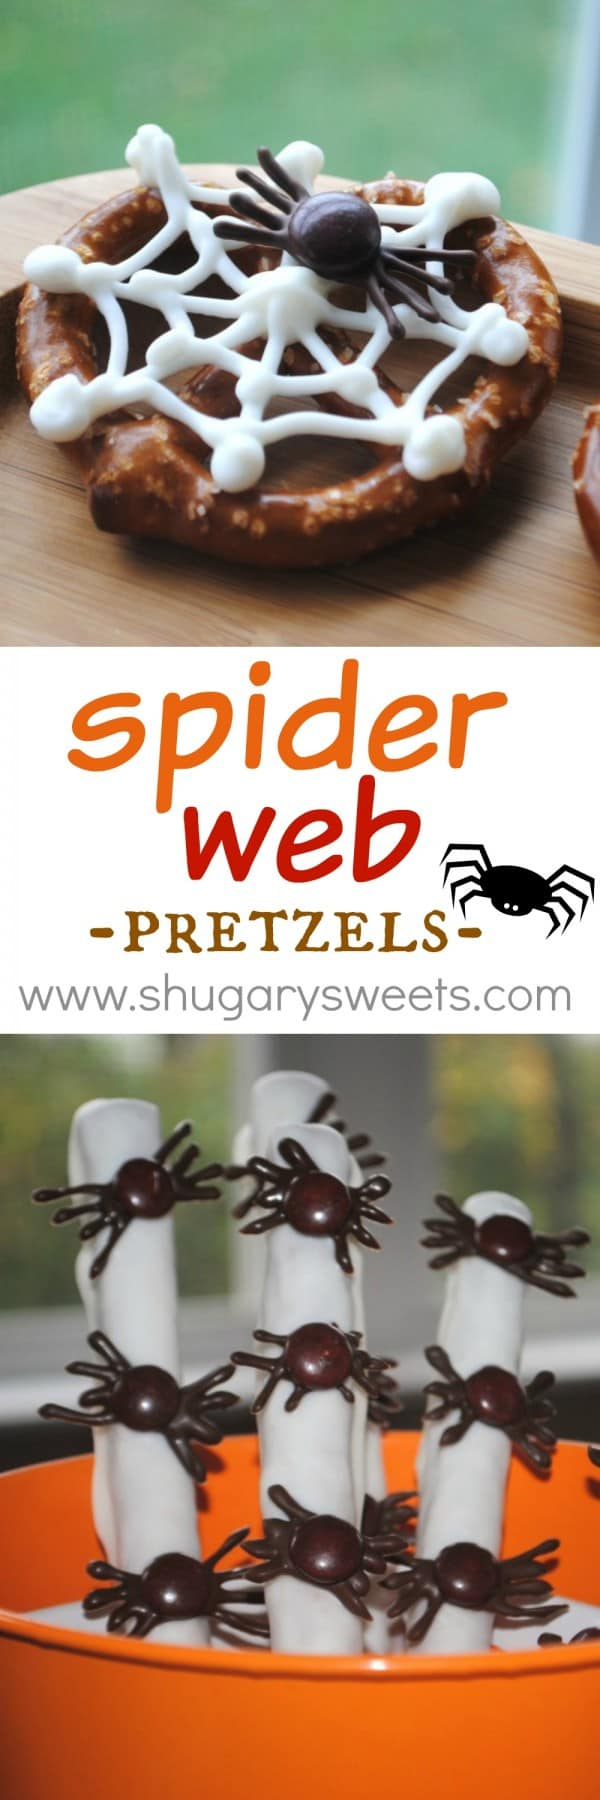 Spider Web Pretzels: with just a couple items, you can make these tasty, creepy treats. Pretzels, white chocolate, M&M's, and chocolate chips